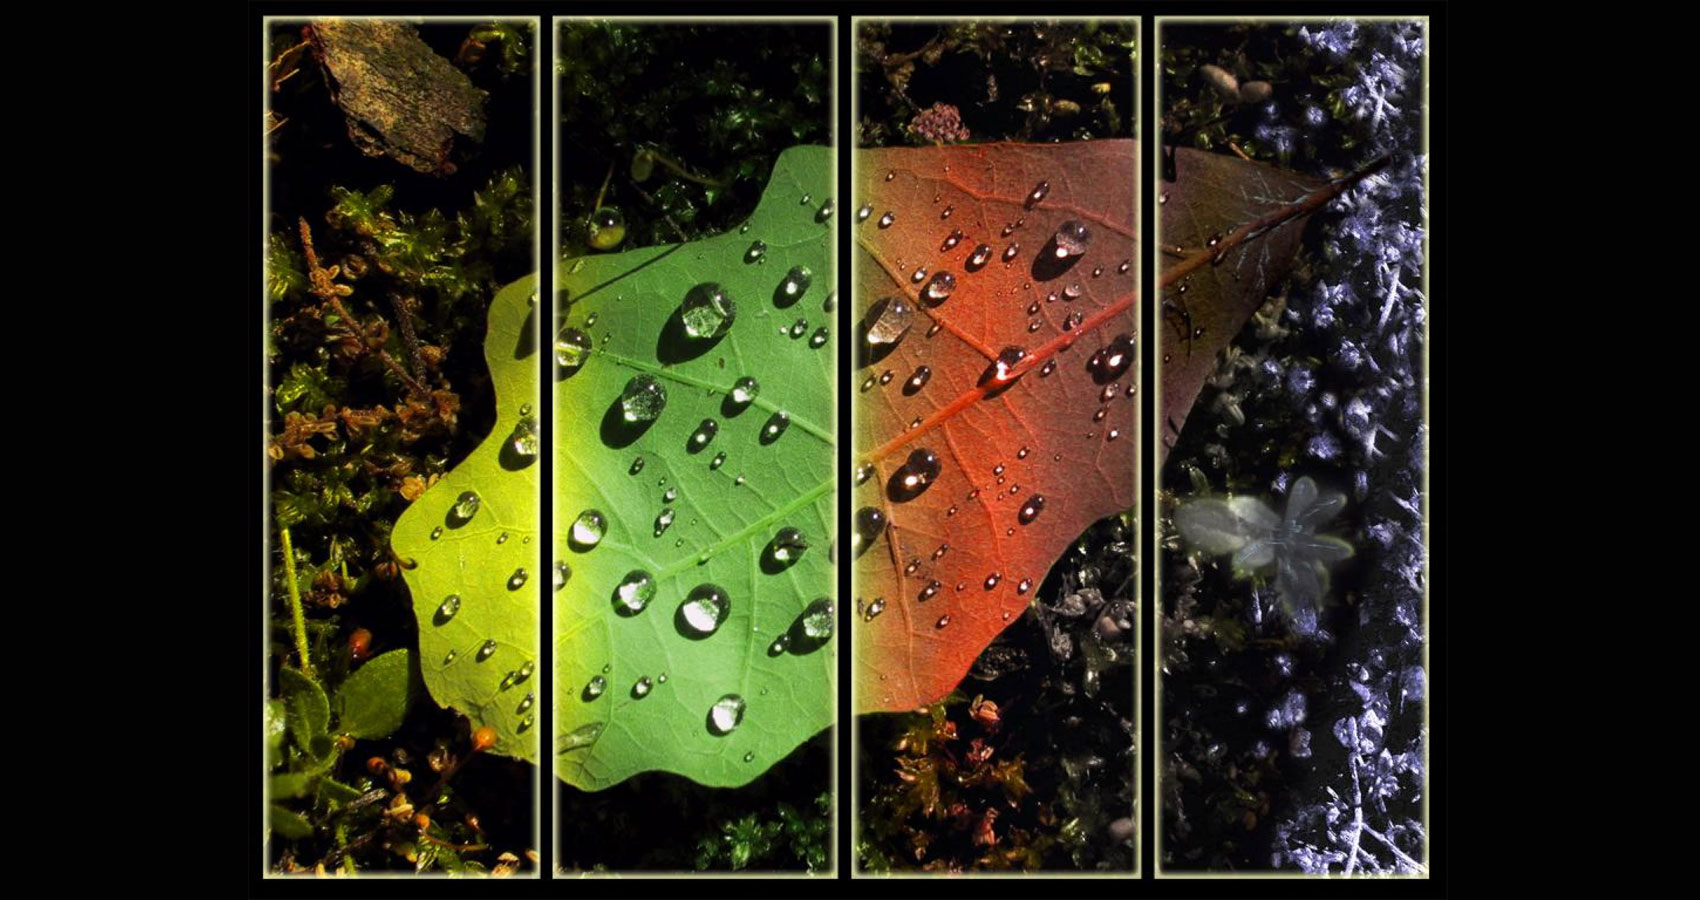 A Life In The Leaf written by Geovanni Villafañe at Spillwords.com